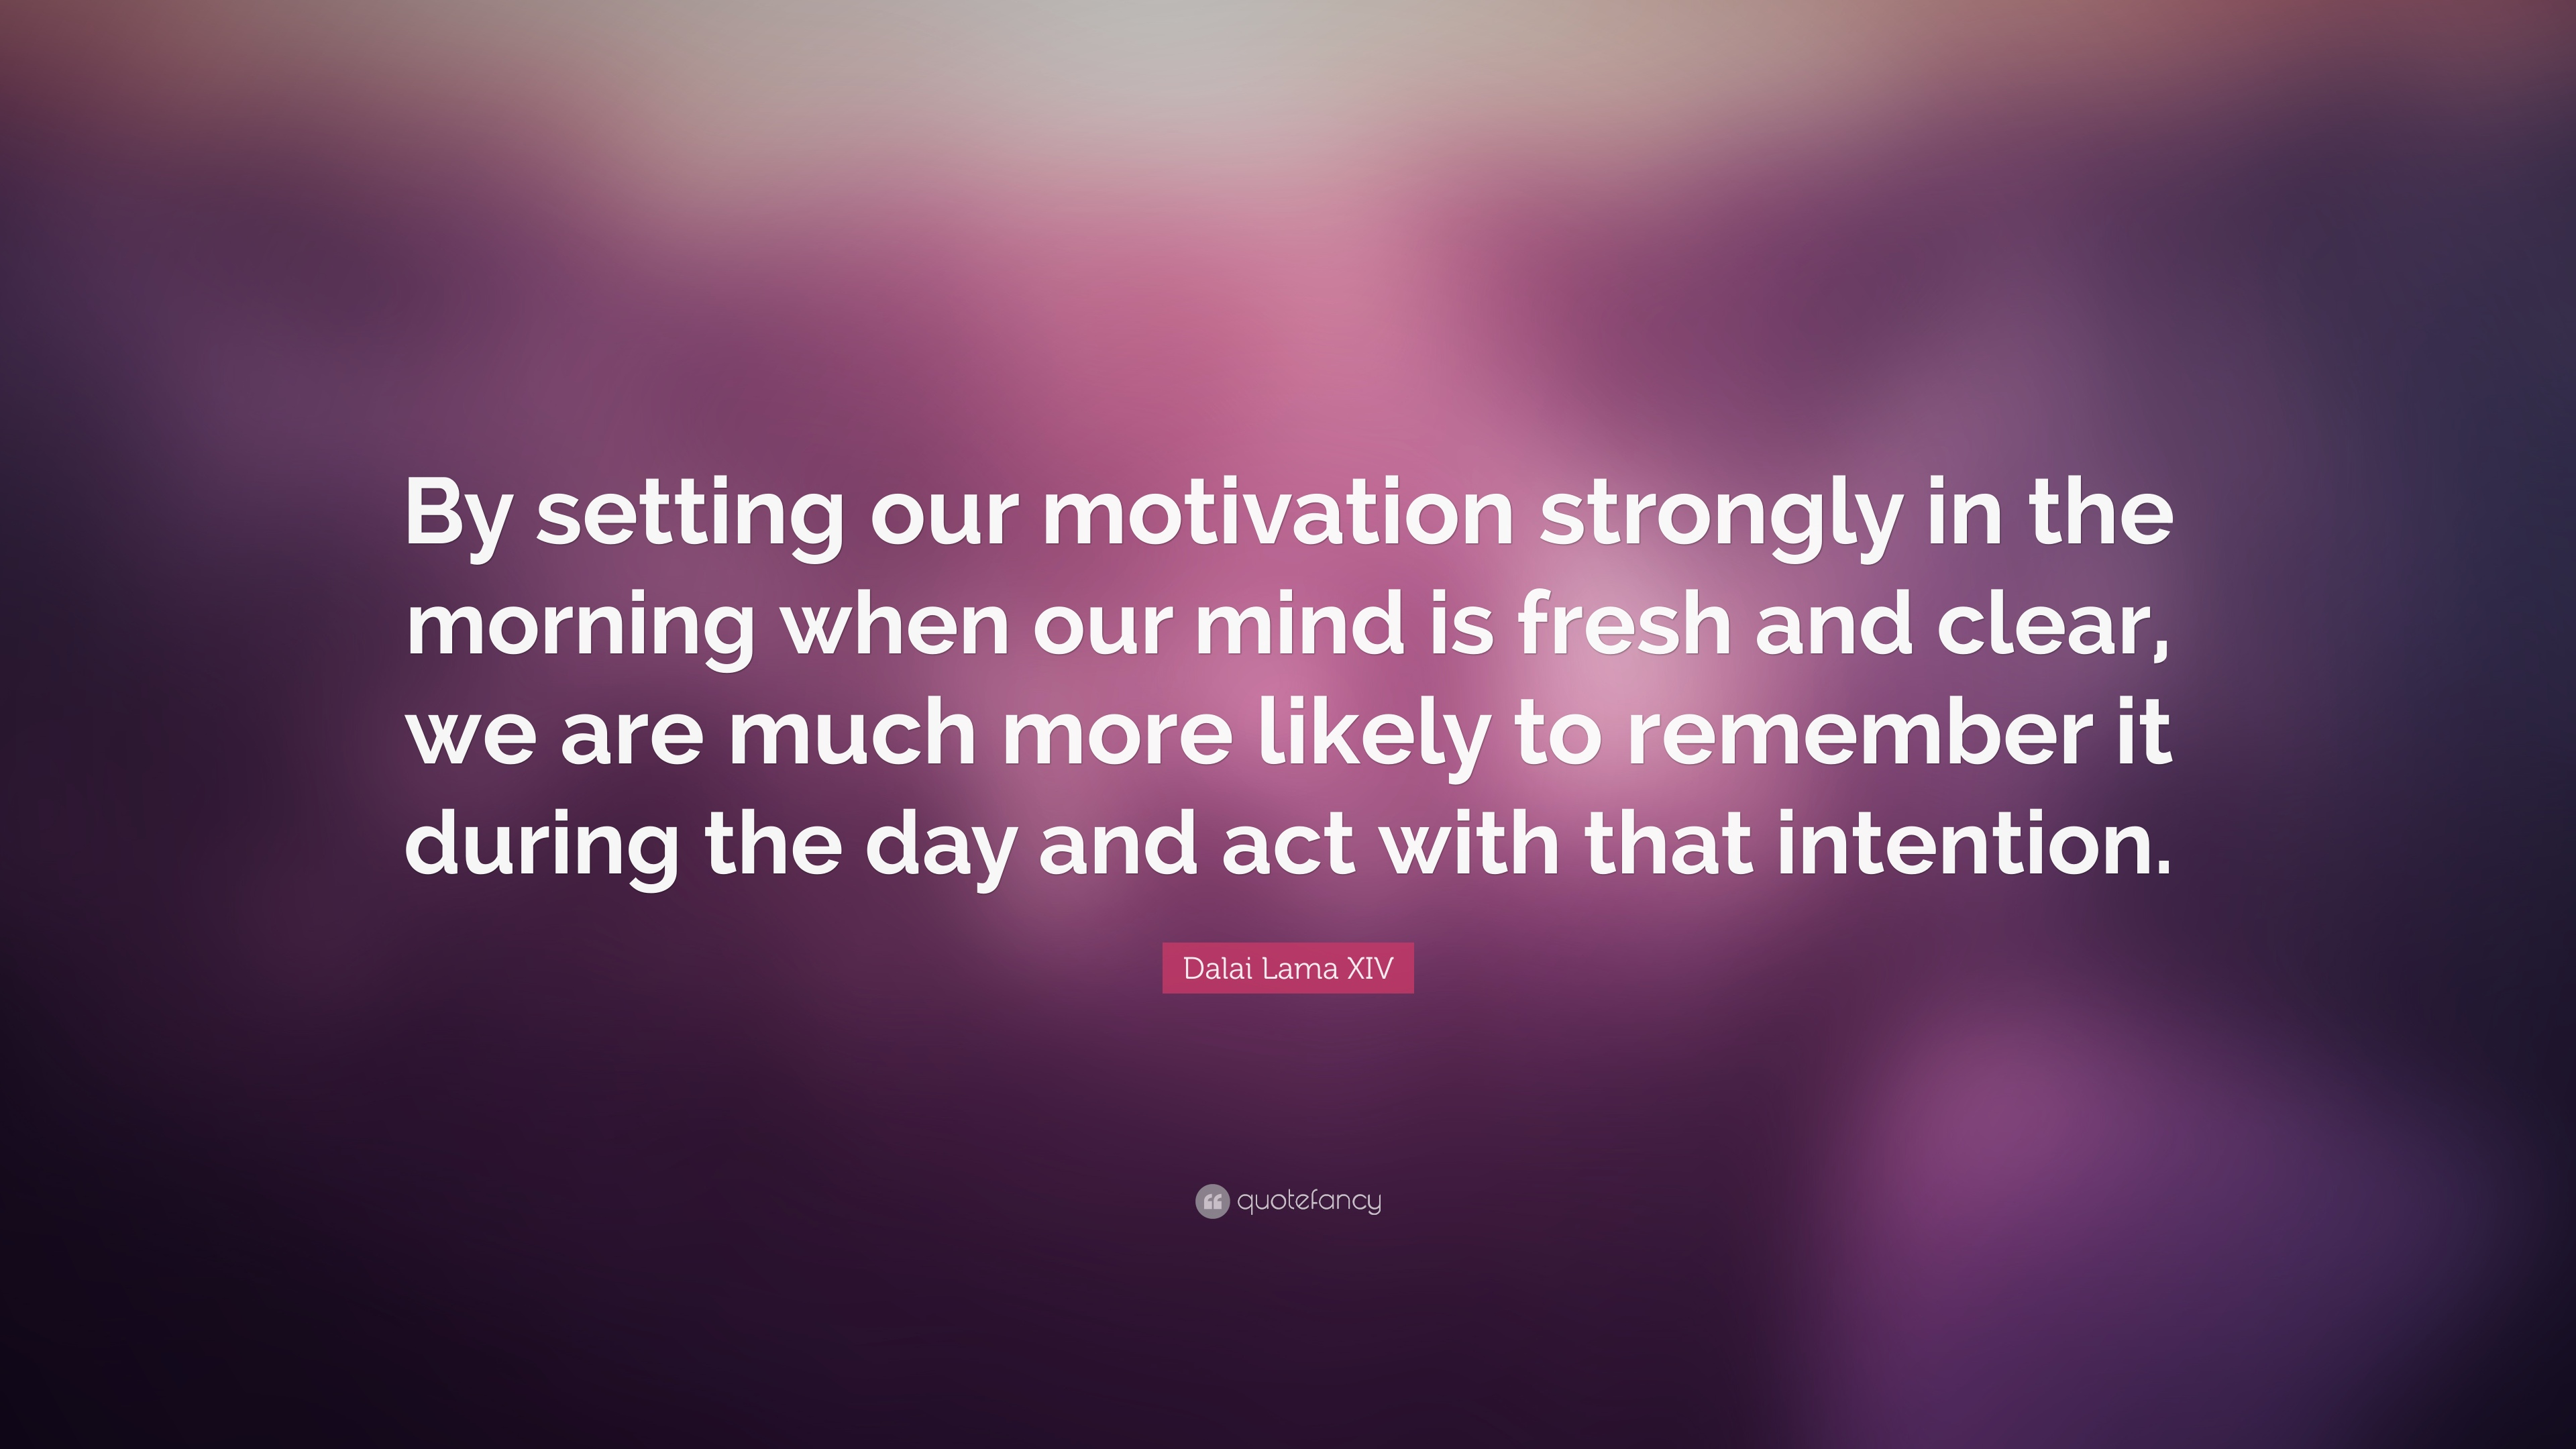 Dalai Lama Xiv Quote By Setting Our Motivation Strongly In The